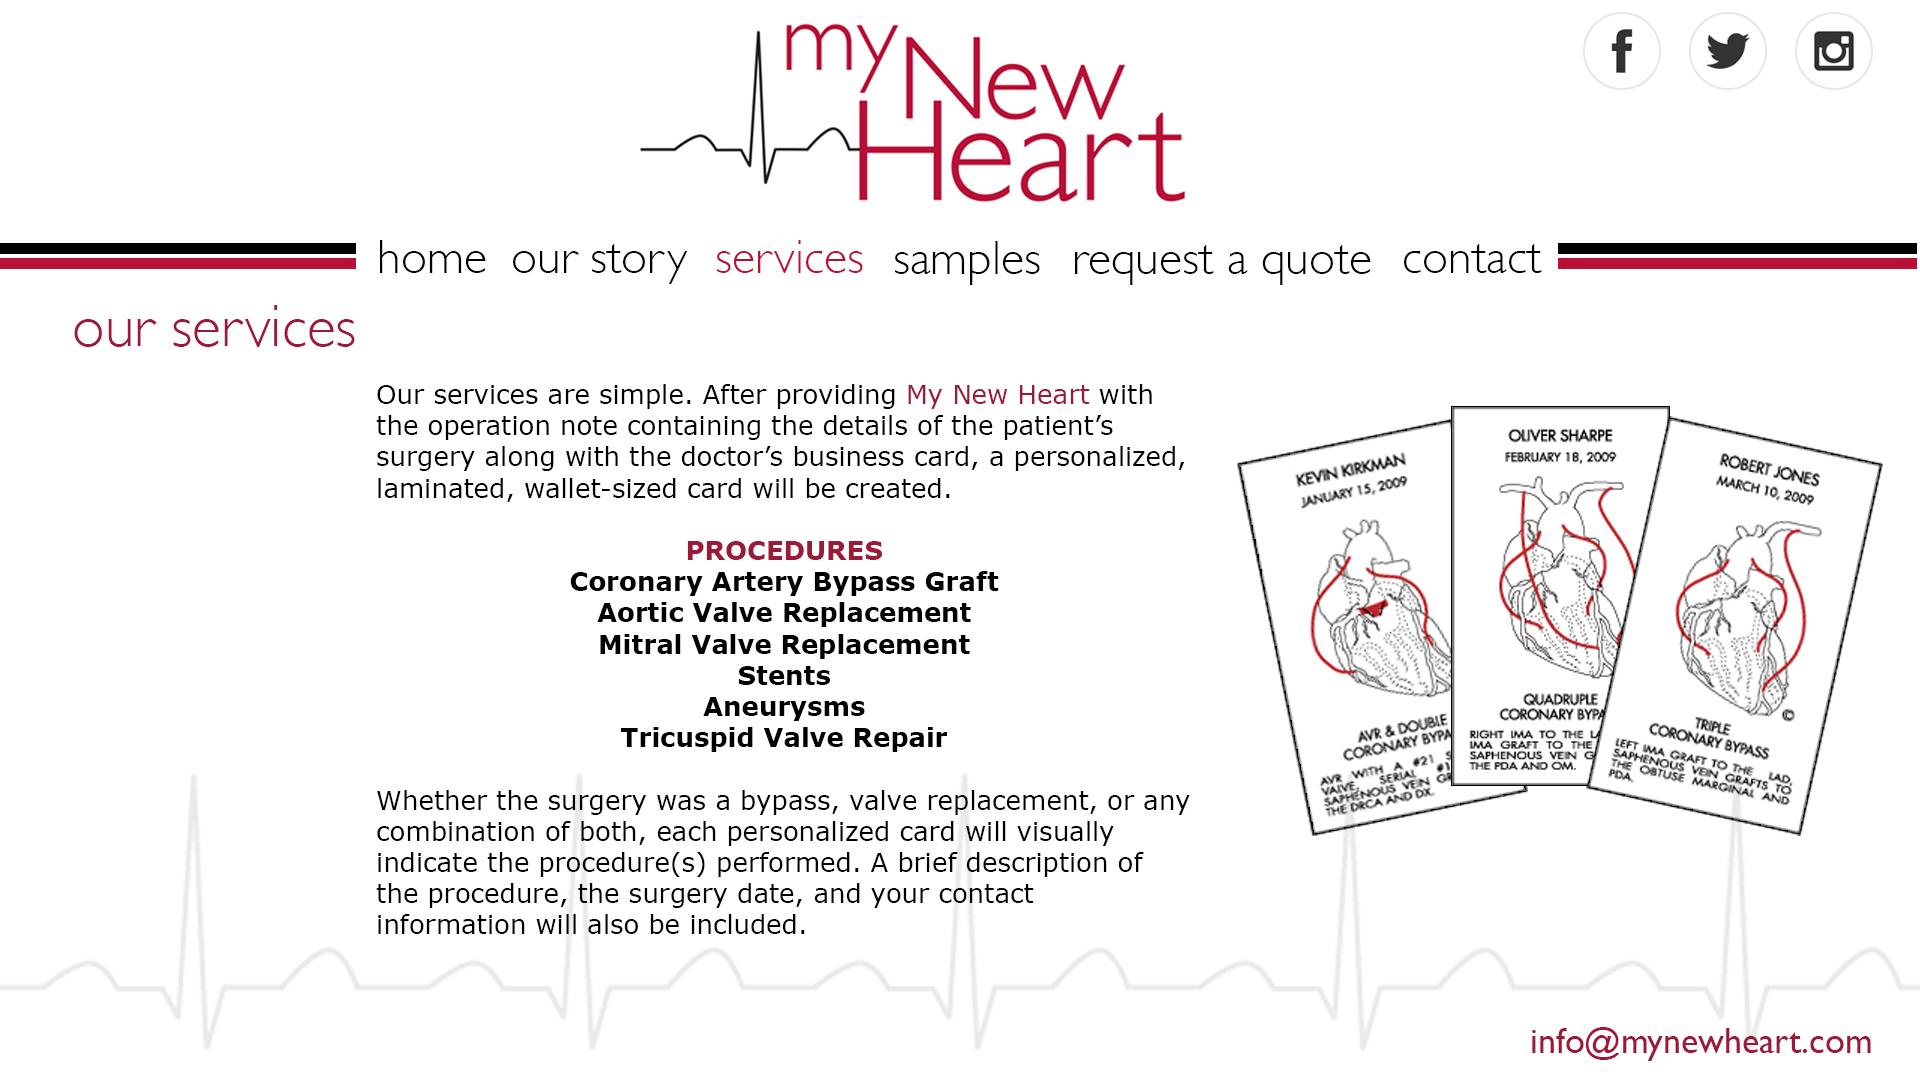 New Heart_Services2.jpg